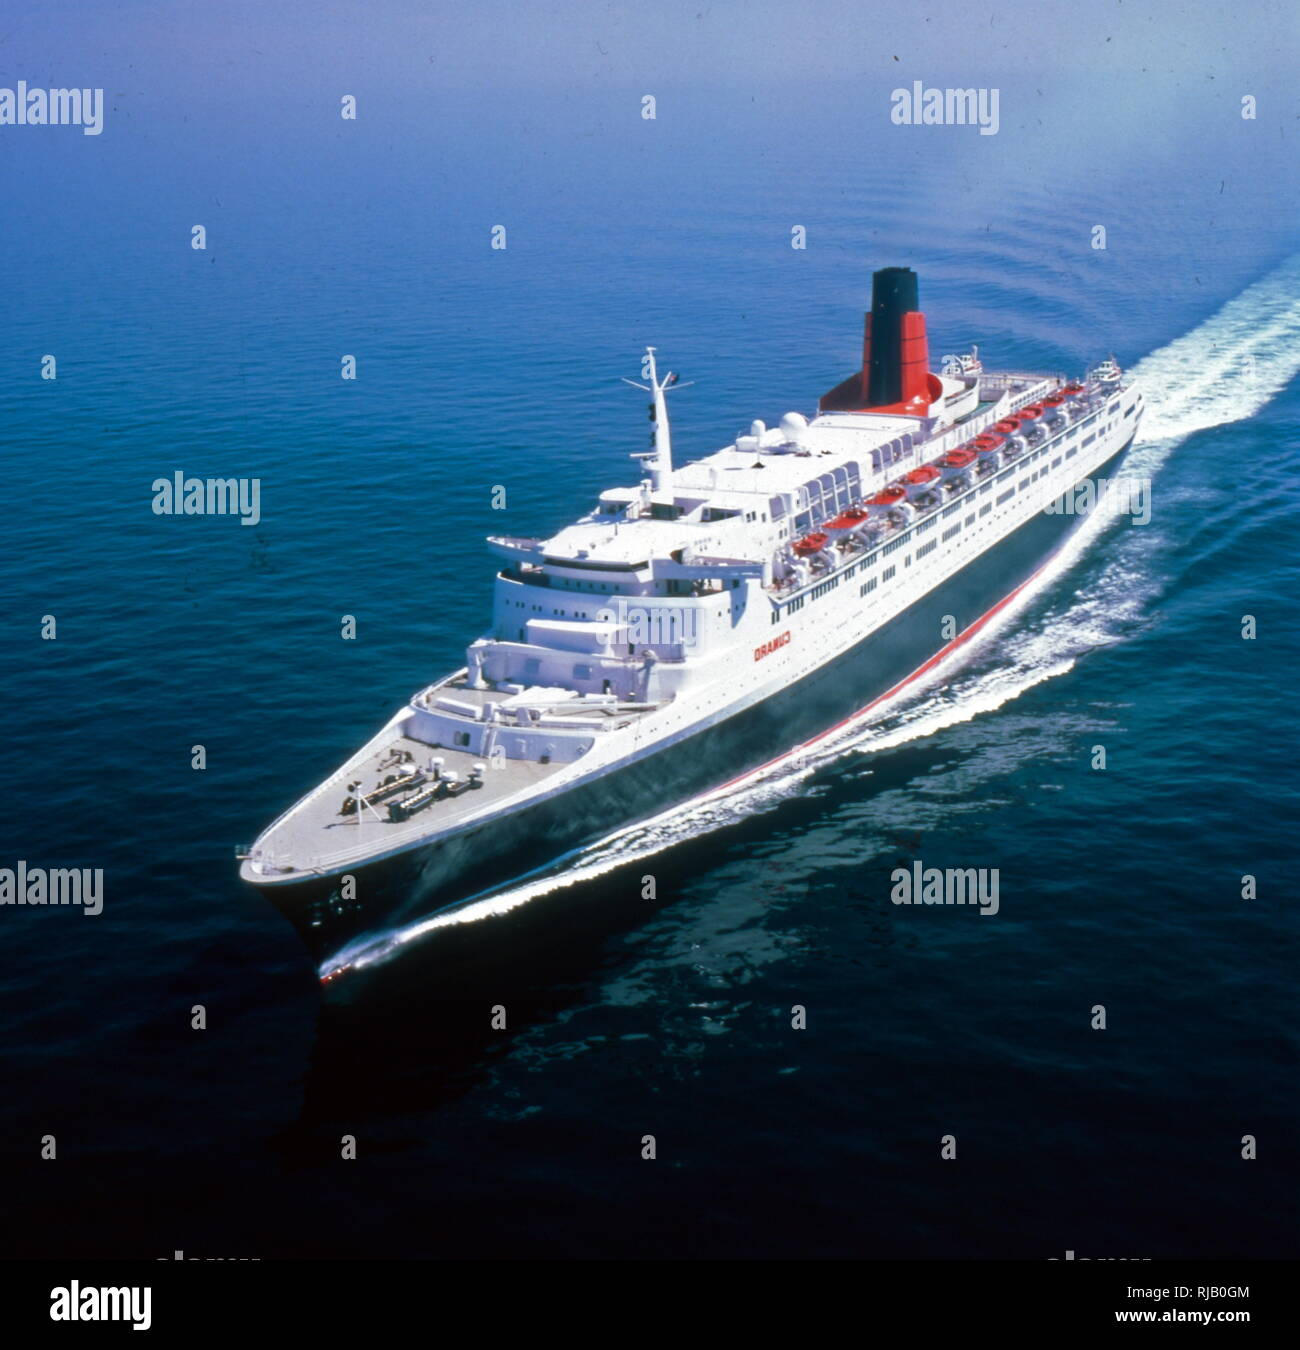 The Queen Elizabeth 2 Often Referred To Simply As Qe2 Is A Floating Hotel And Retired Ocean Liner Built For The Cunard Line Which Was Operated By Cunard As Both A Transatlantic